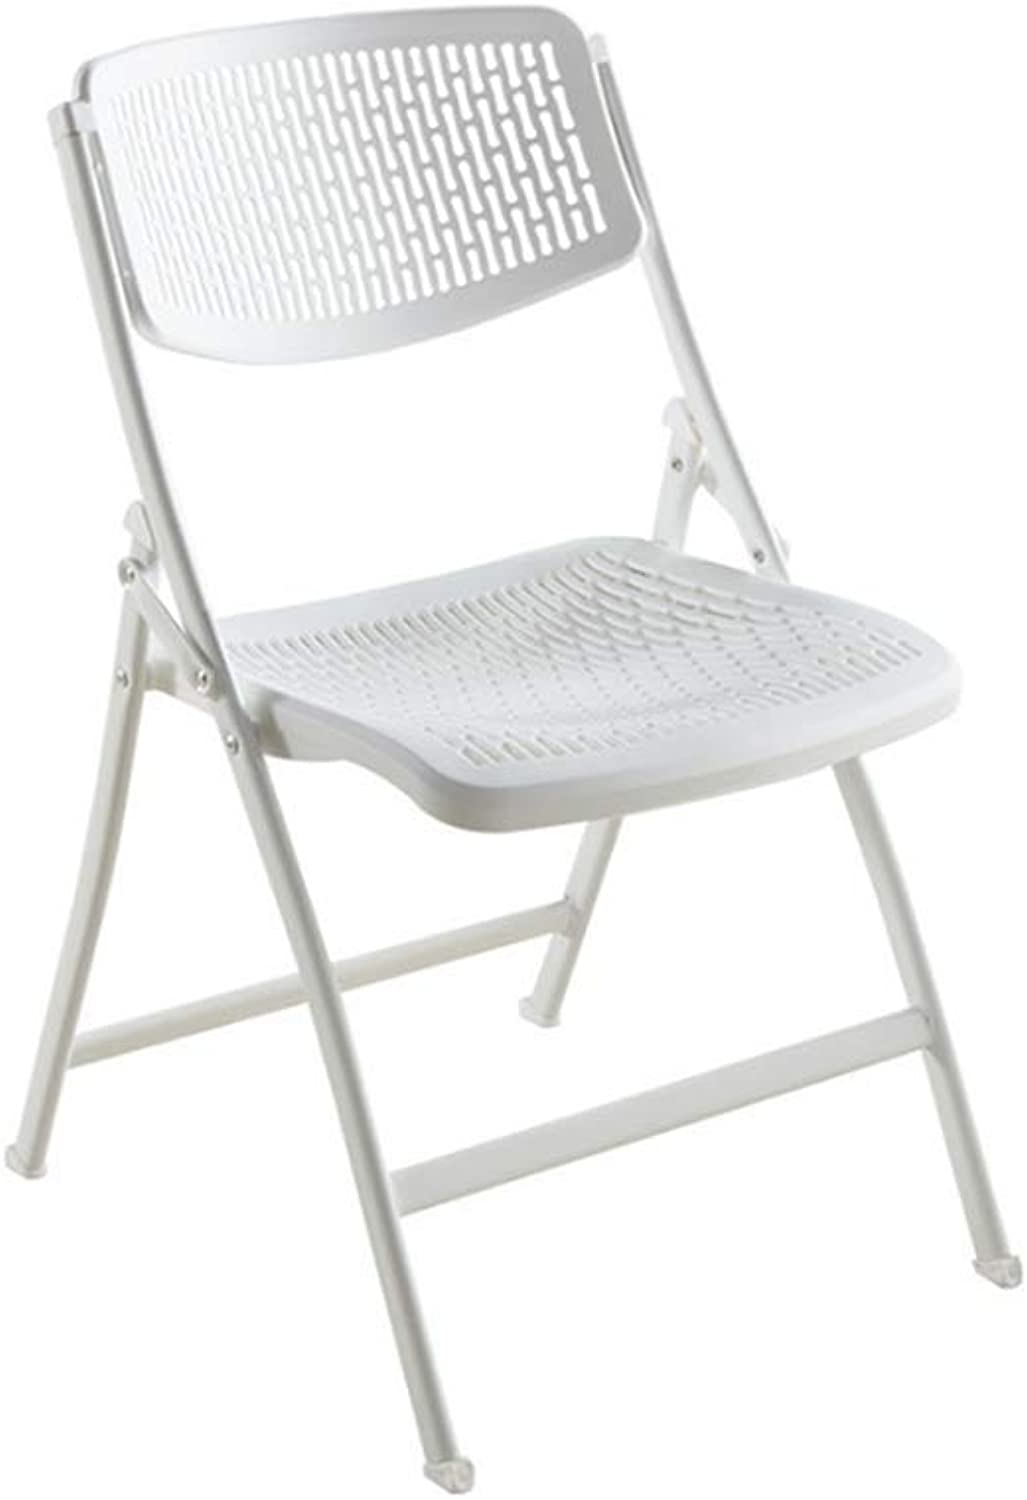 YCSD Thickened Folding Chair Plastic Portable Chair Modern Minimalist Office Chair Training Chair (color   White)